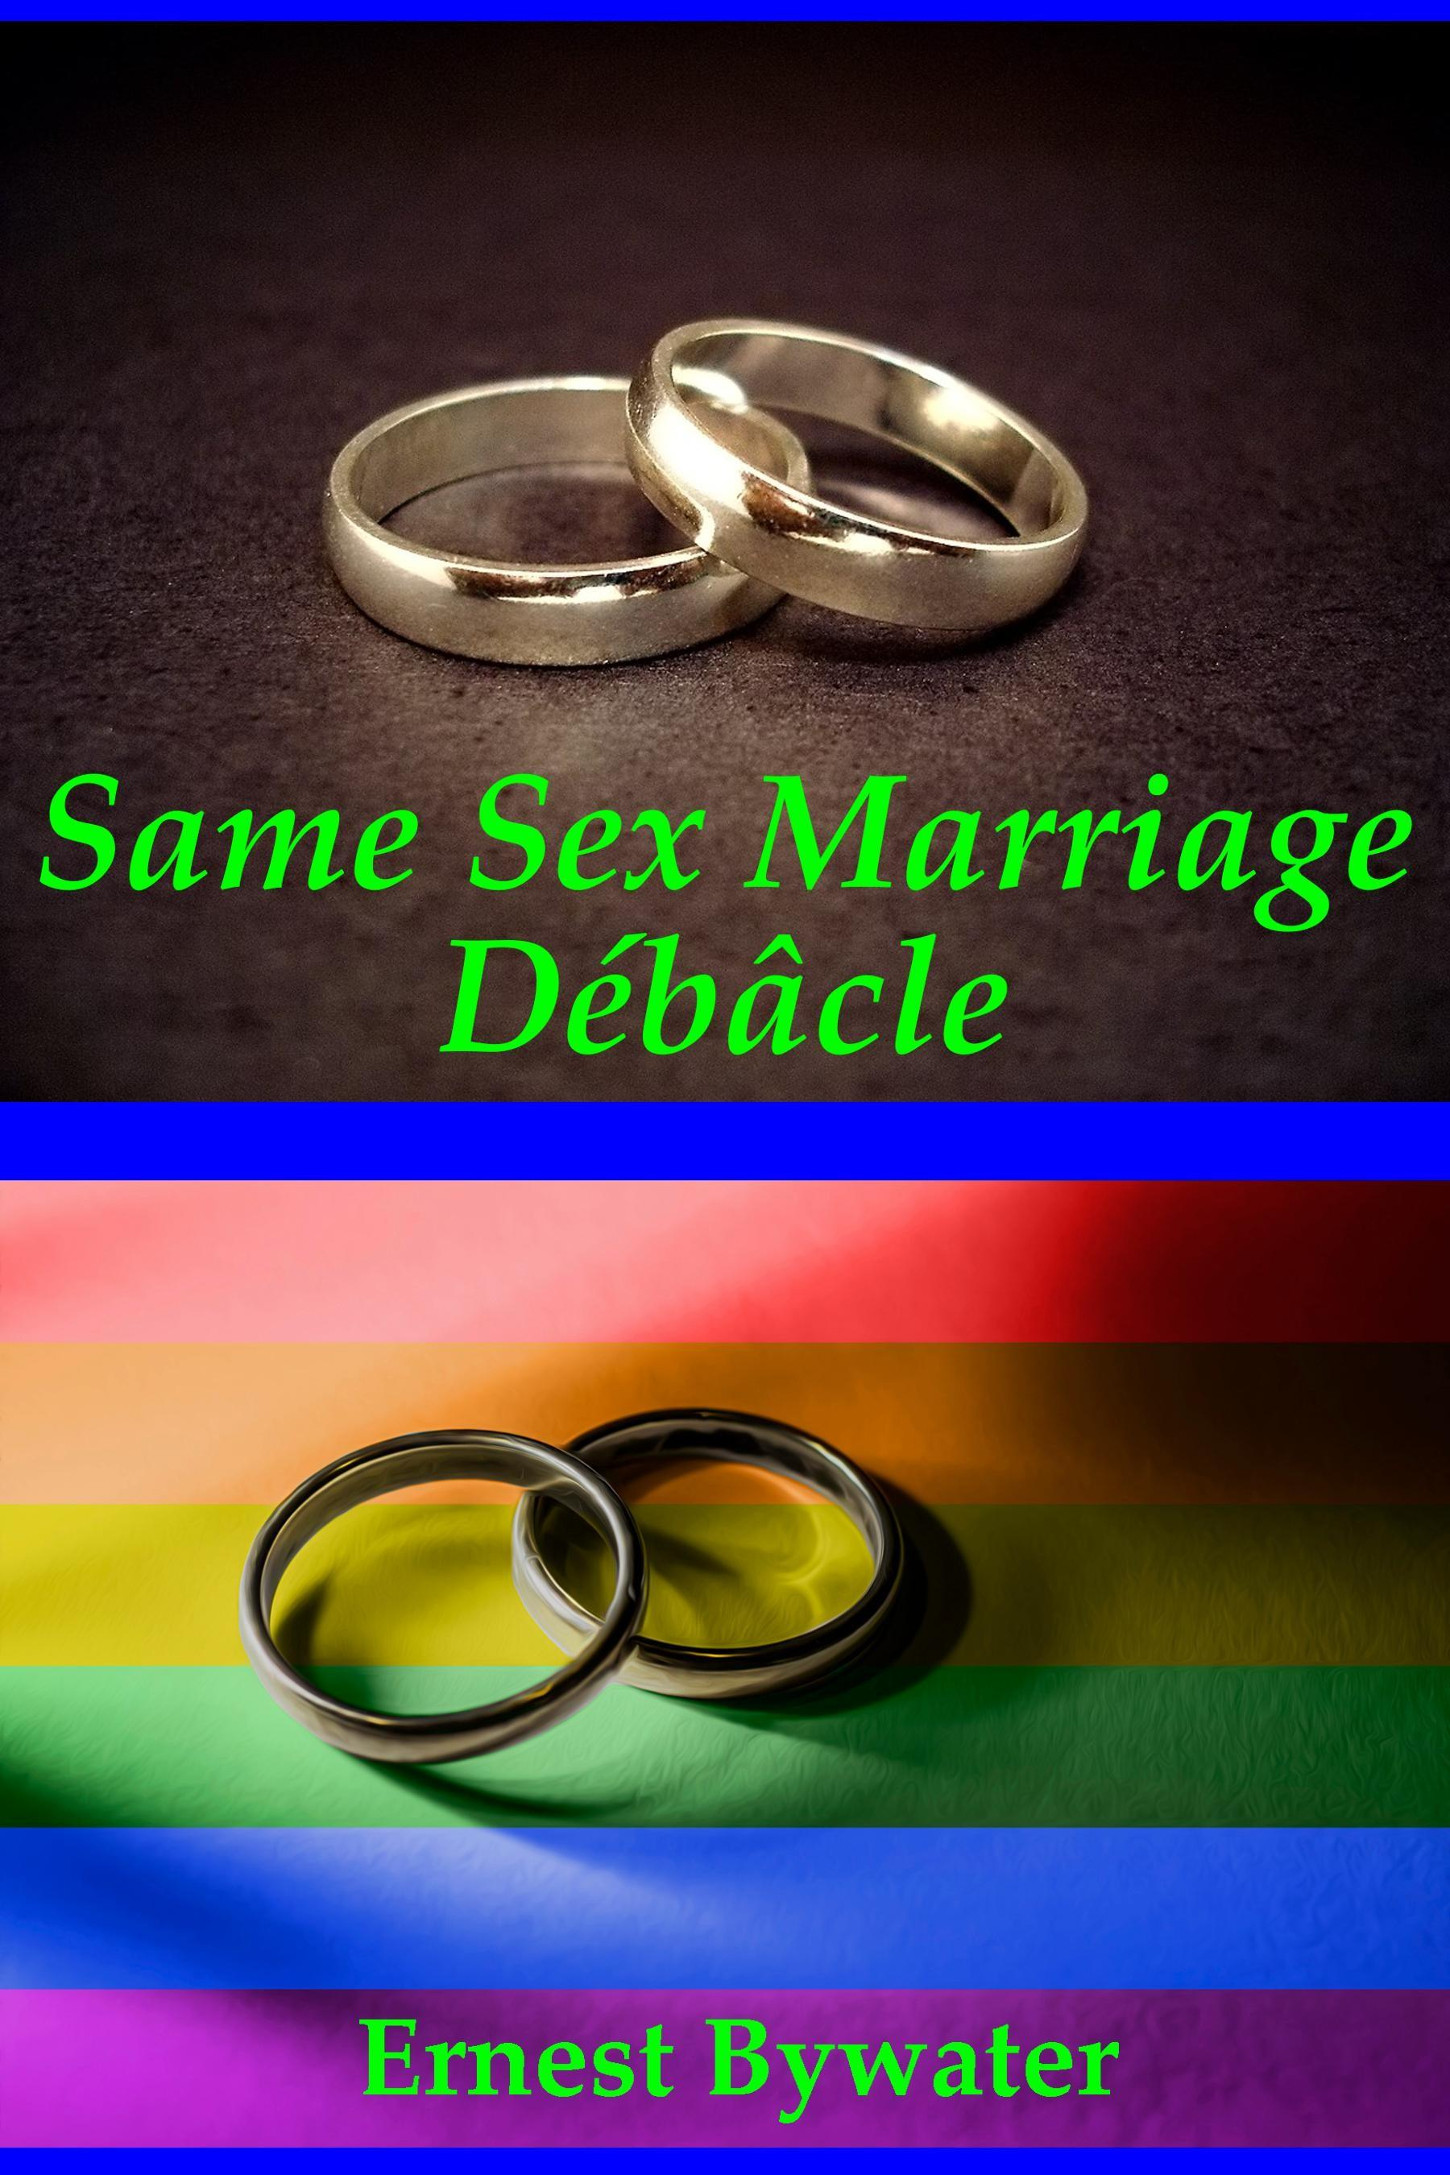 Same sex marriage stories